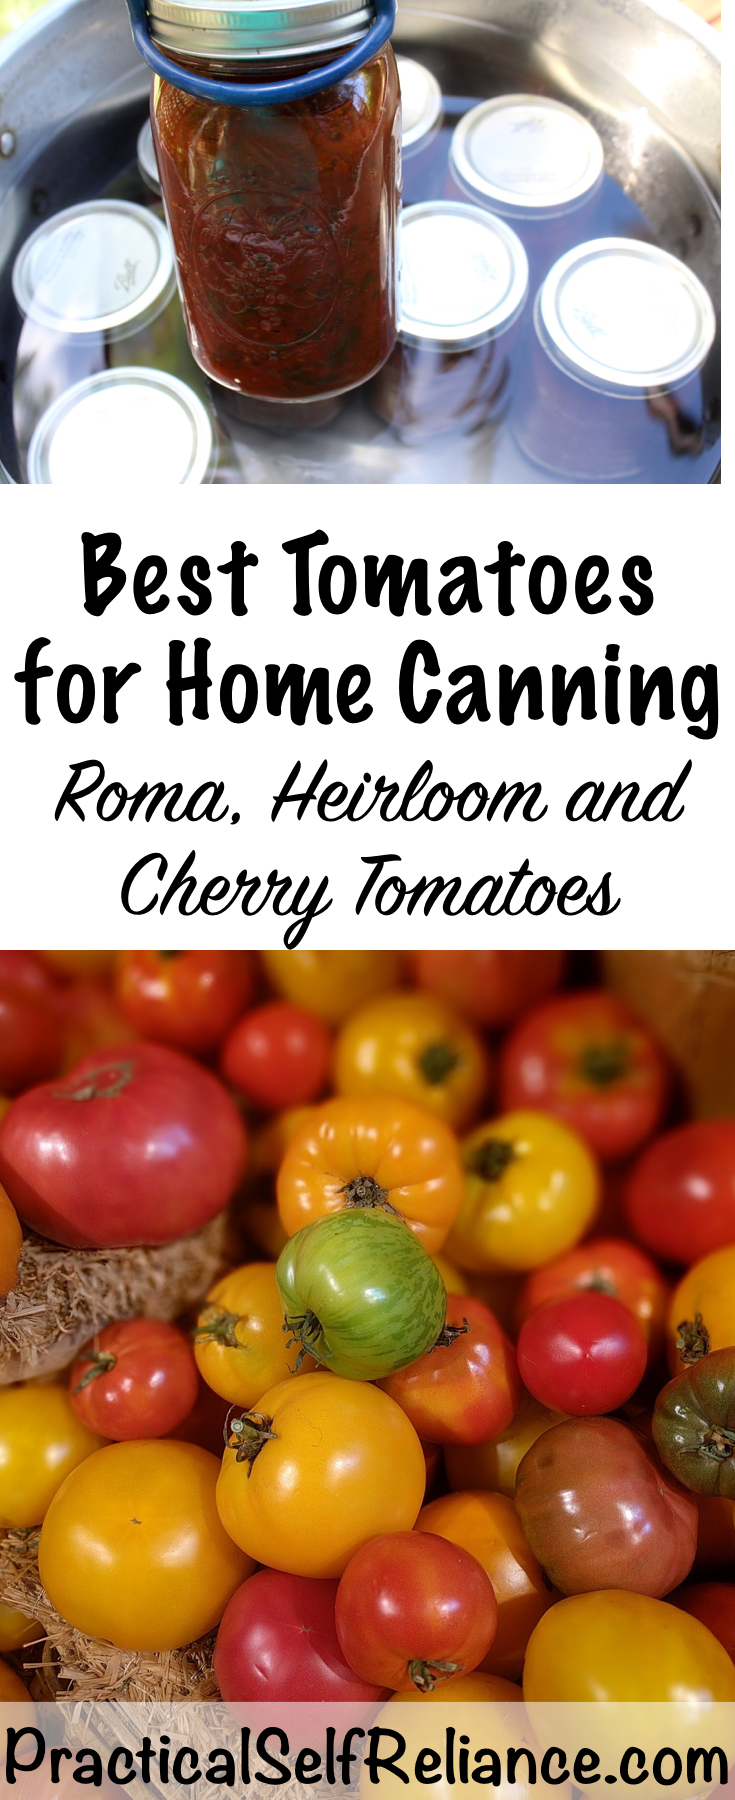 Best Tomatoes for Home Canning